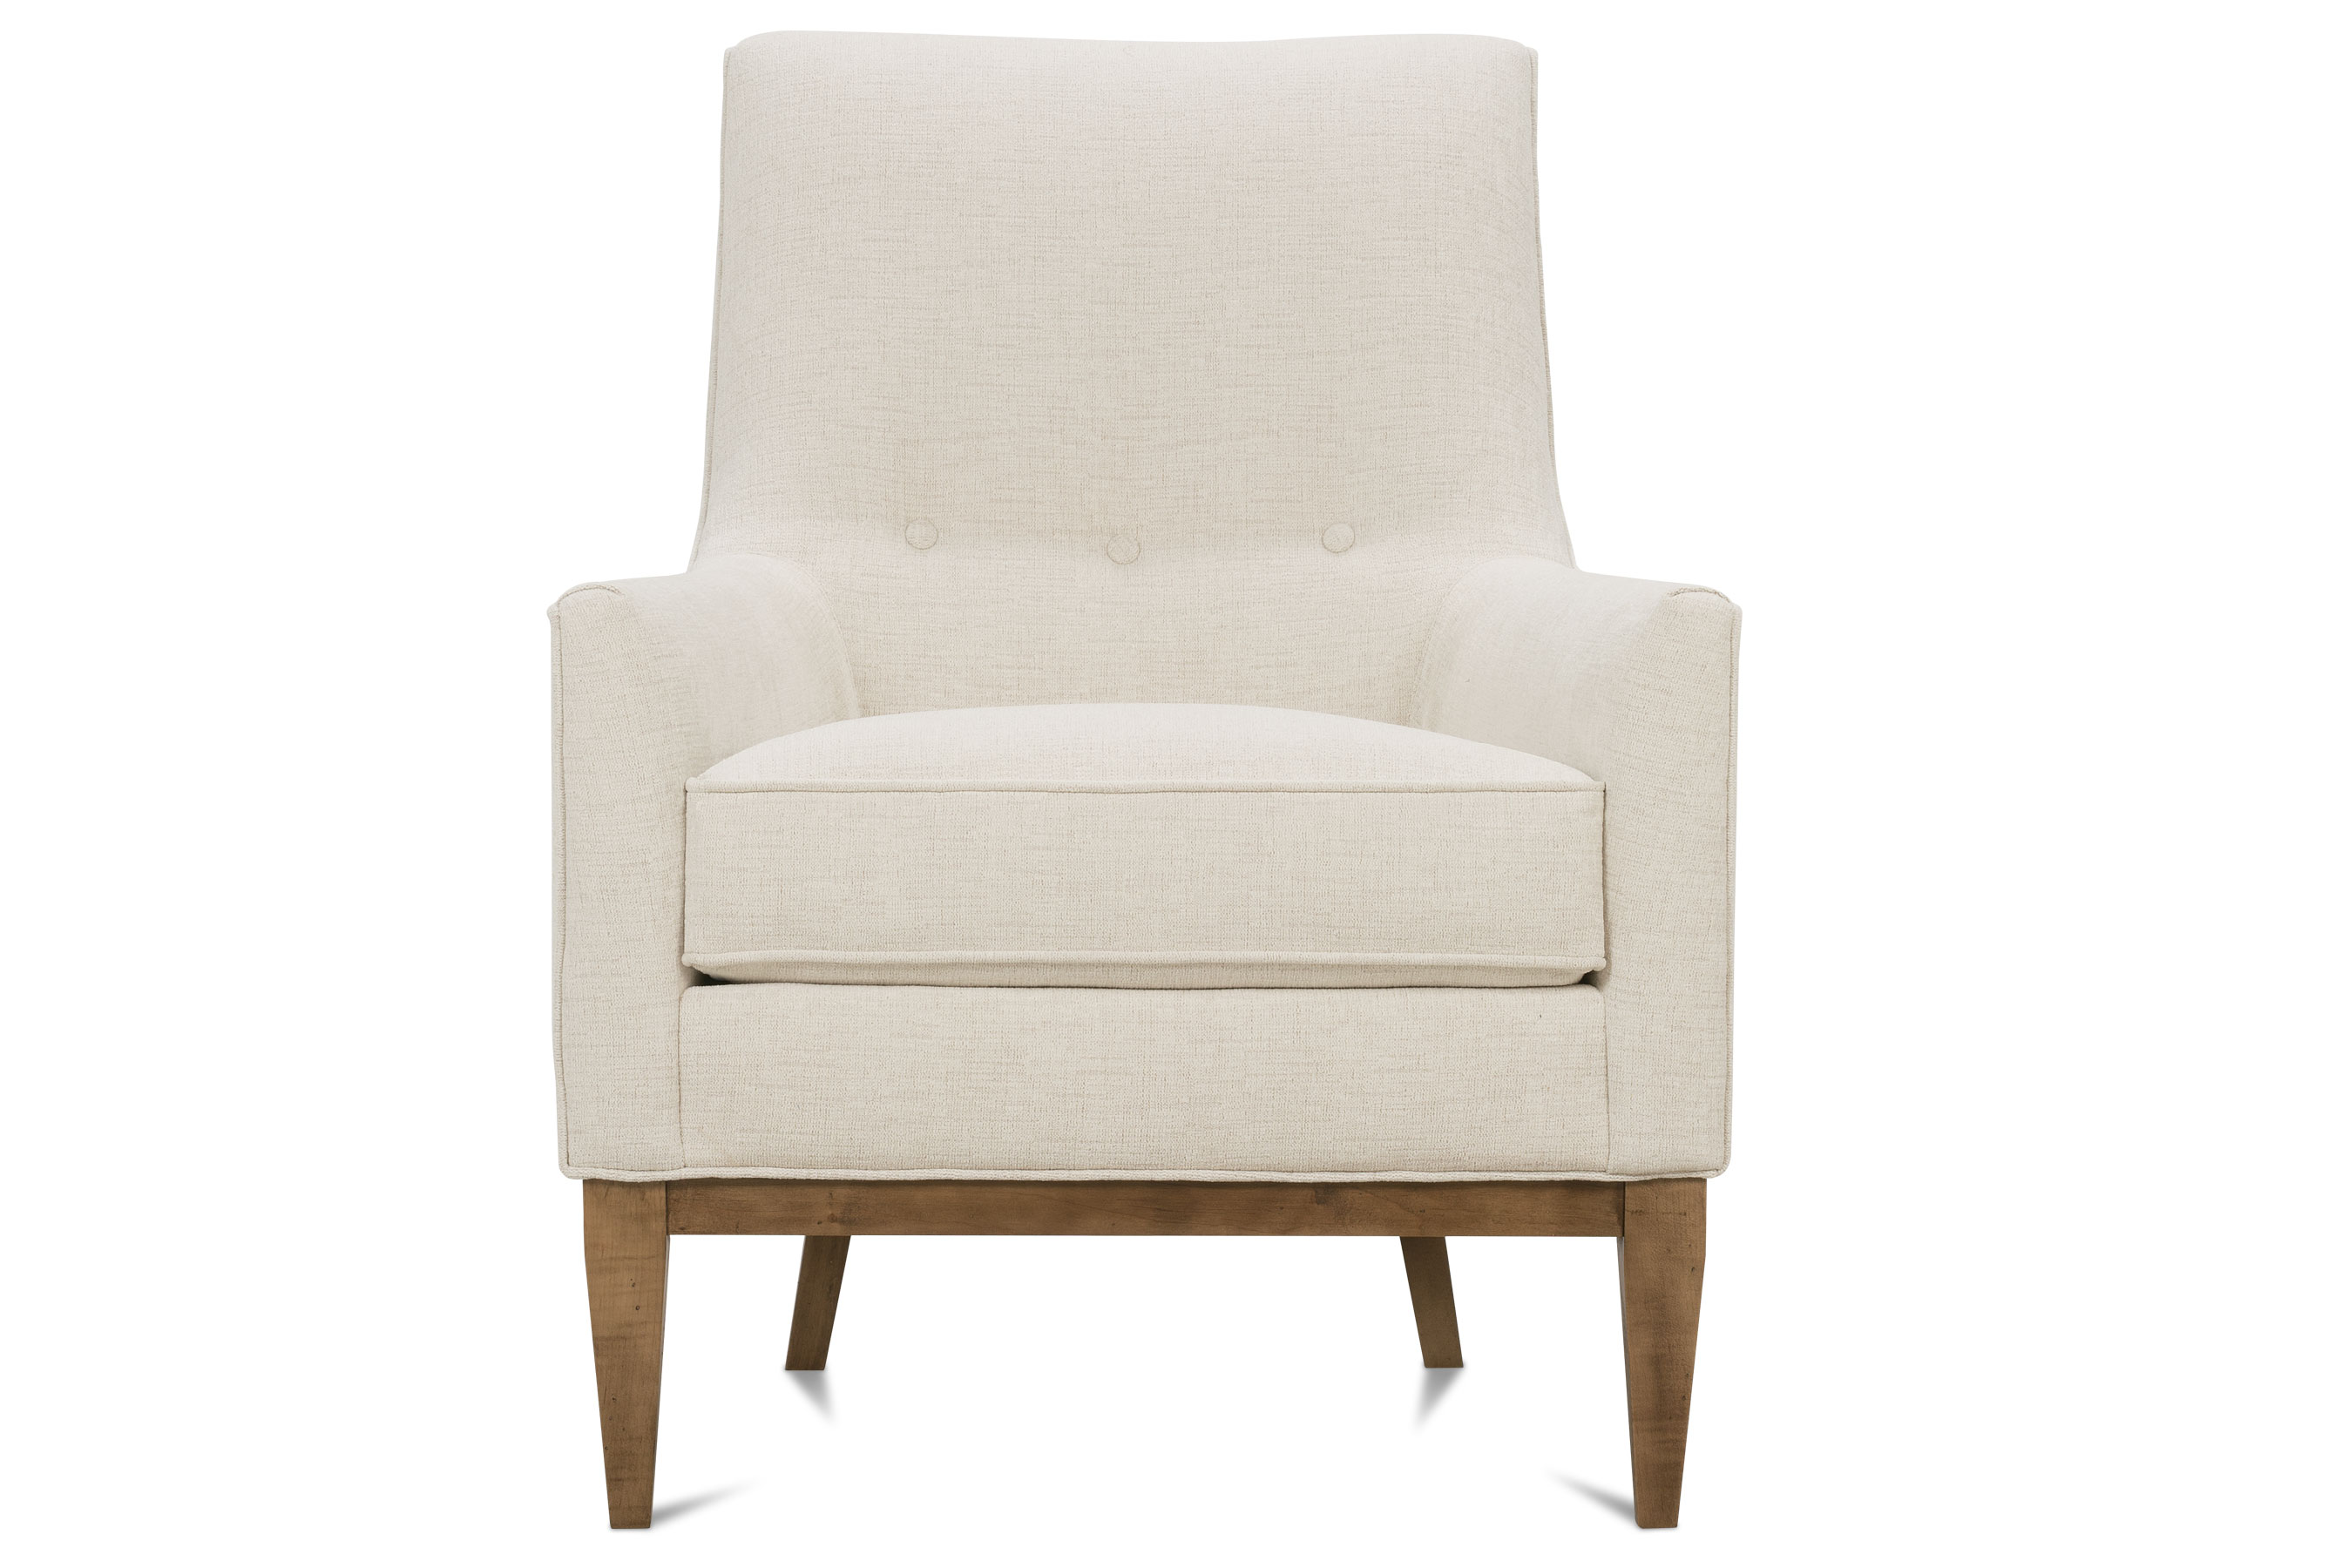 Thatcher P320 Wood Frame Chair   Sofas and Sectionals